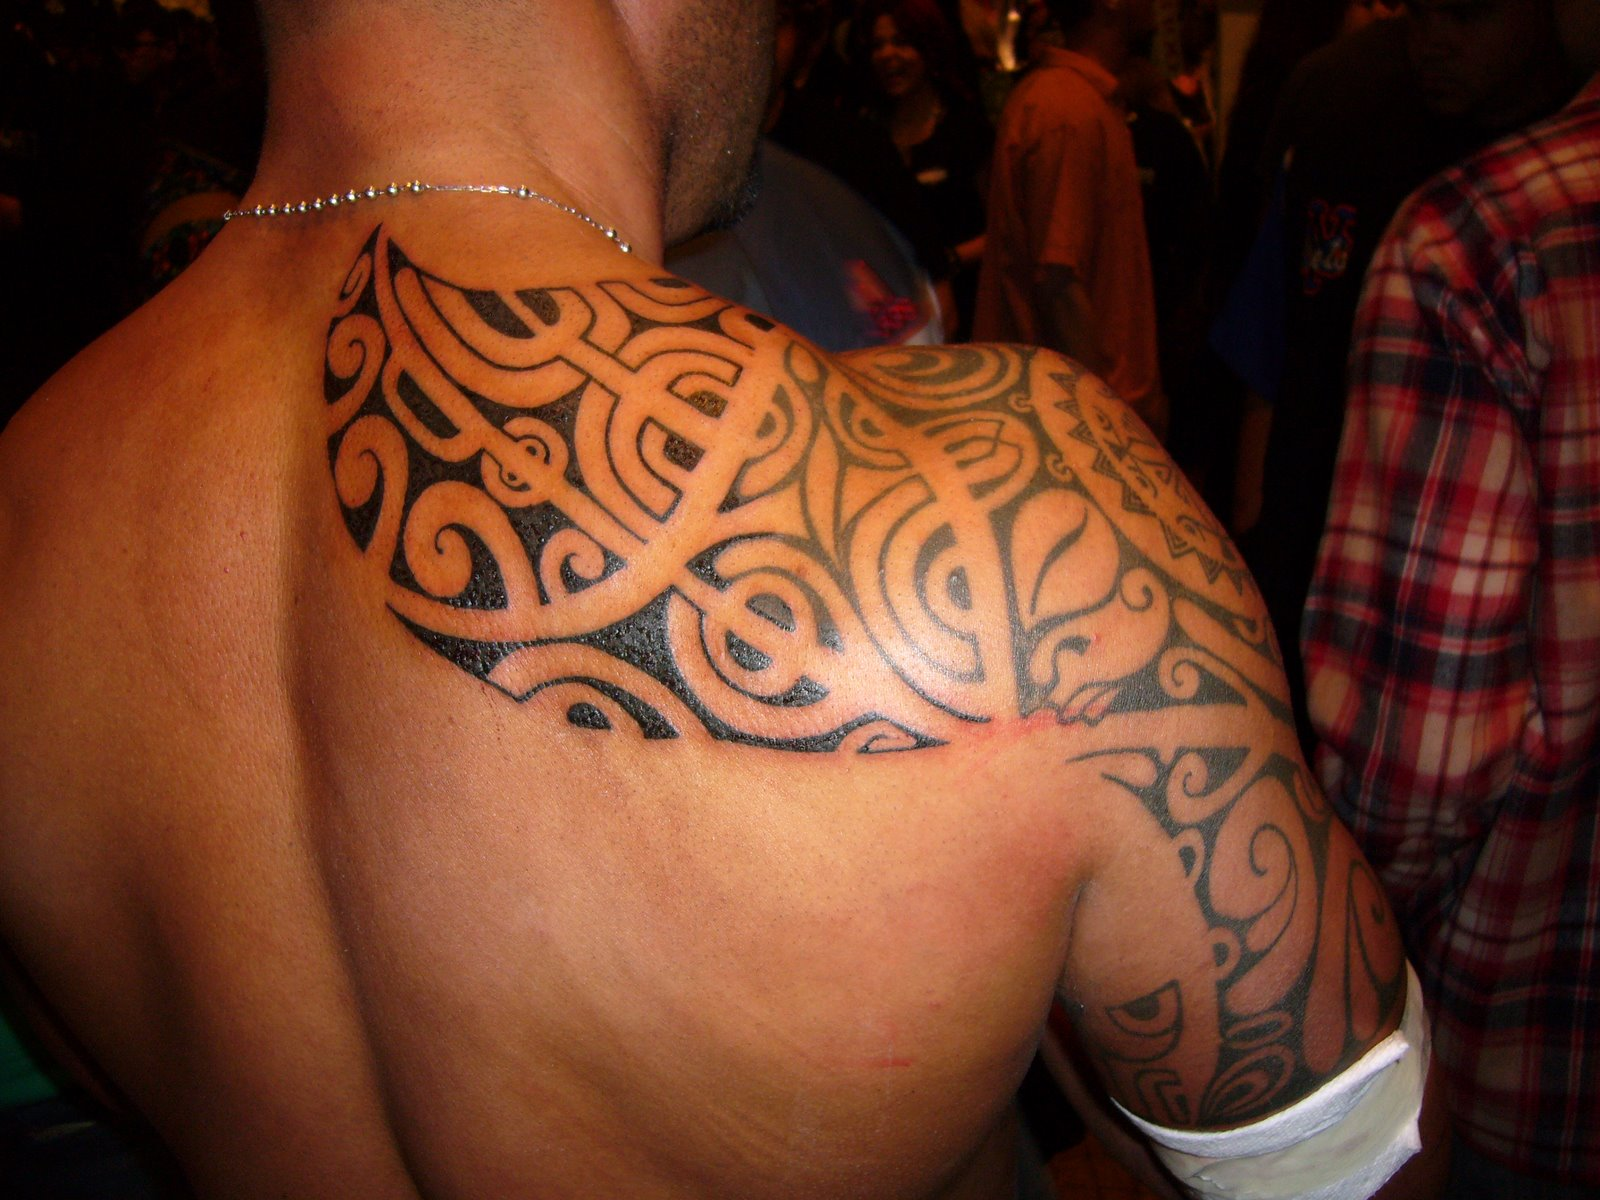 Tumblr tattoo tattoos for men shoulder designs for Tattoo ideas men shoulder